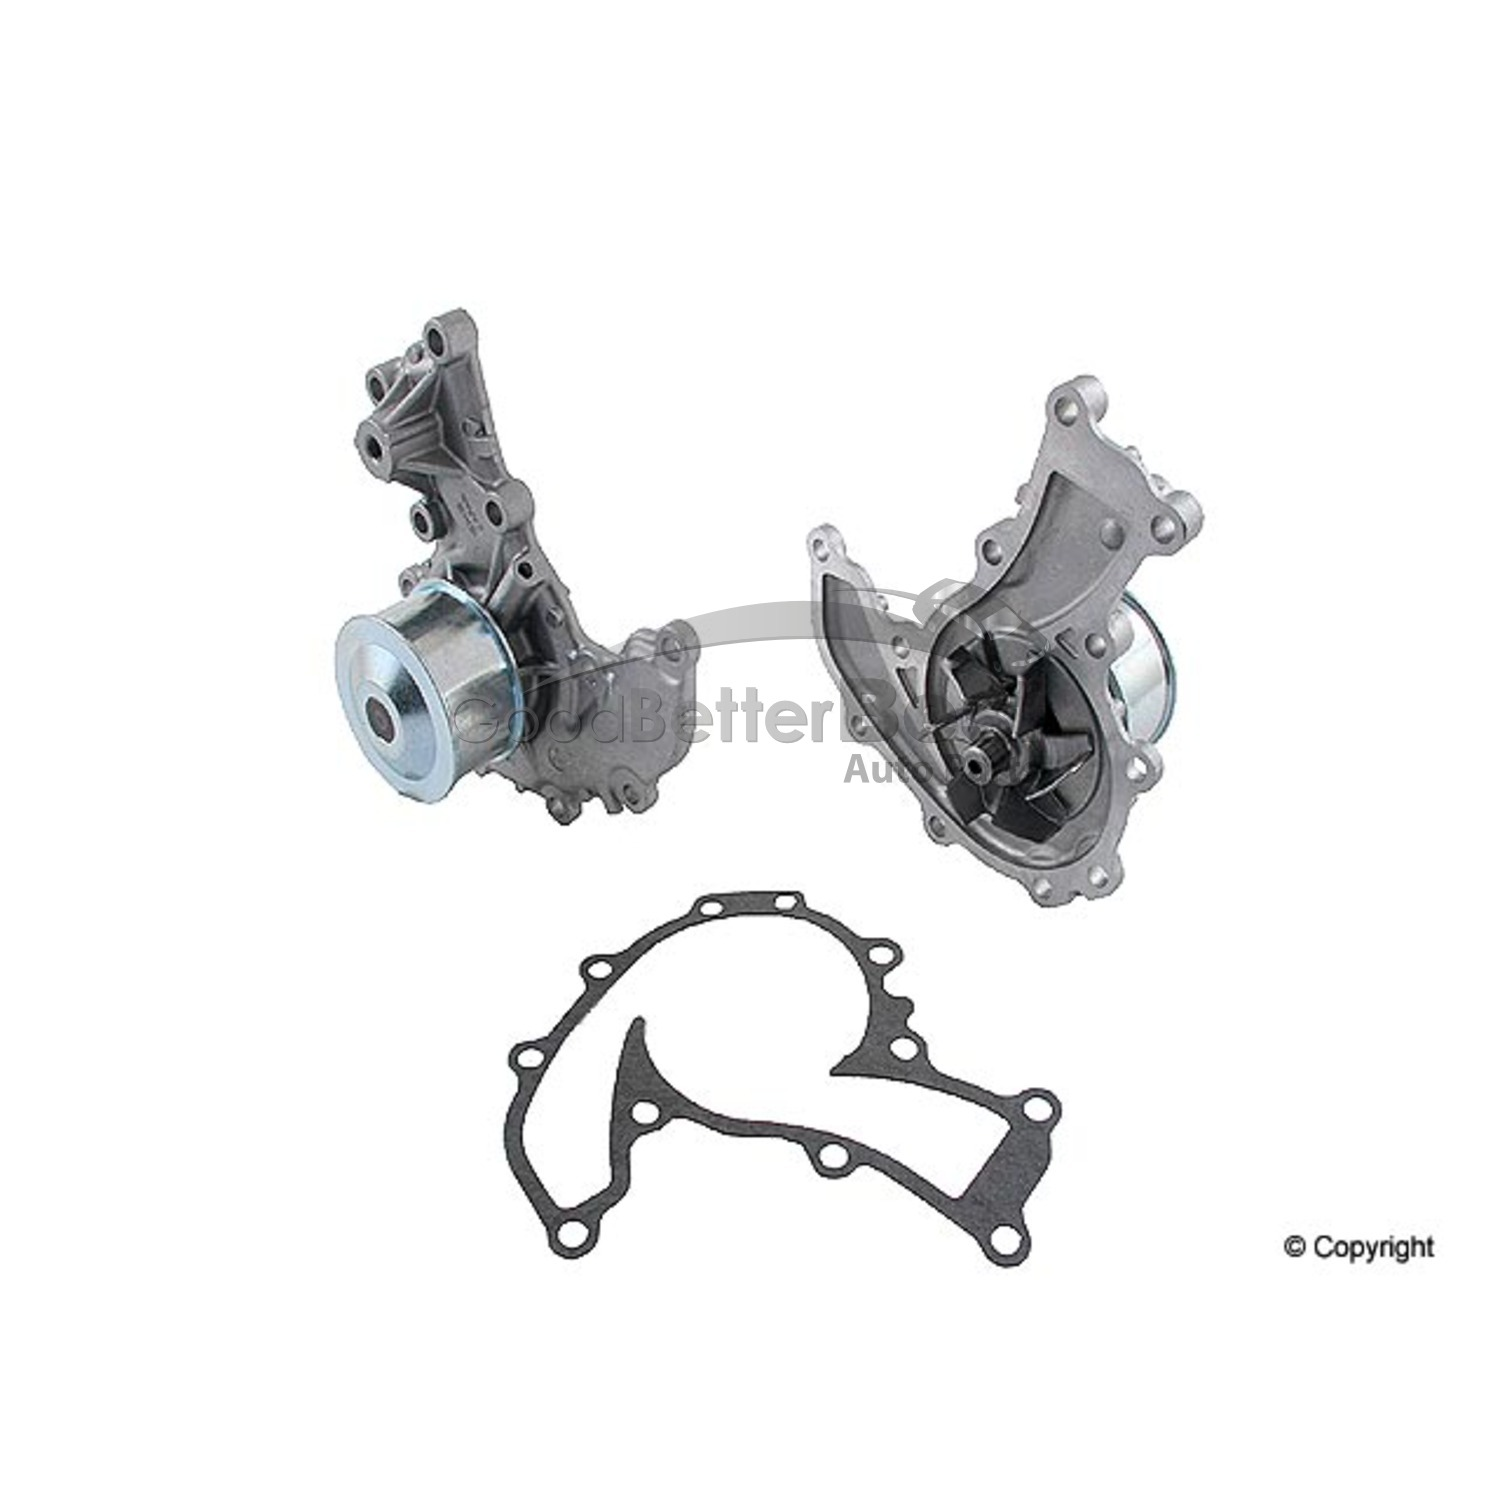 One New GMB Engine Water Pump 1401440 8971675540 for Honda